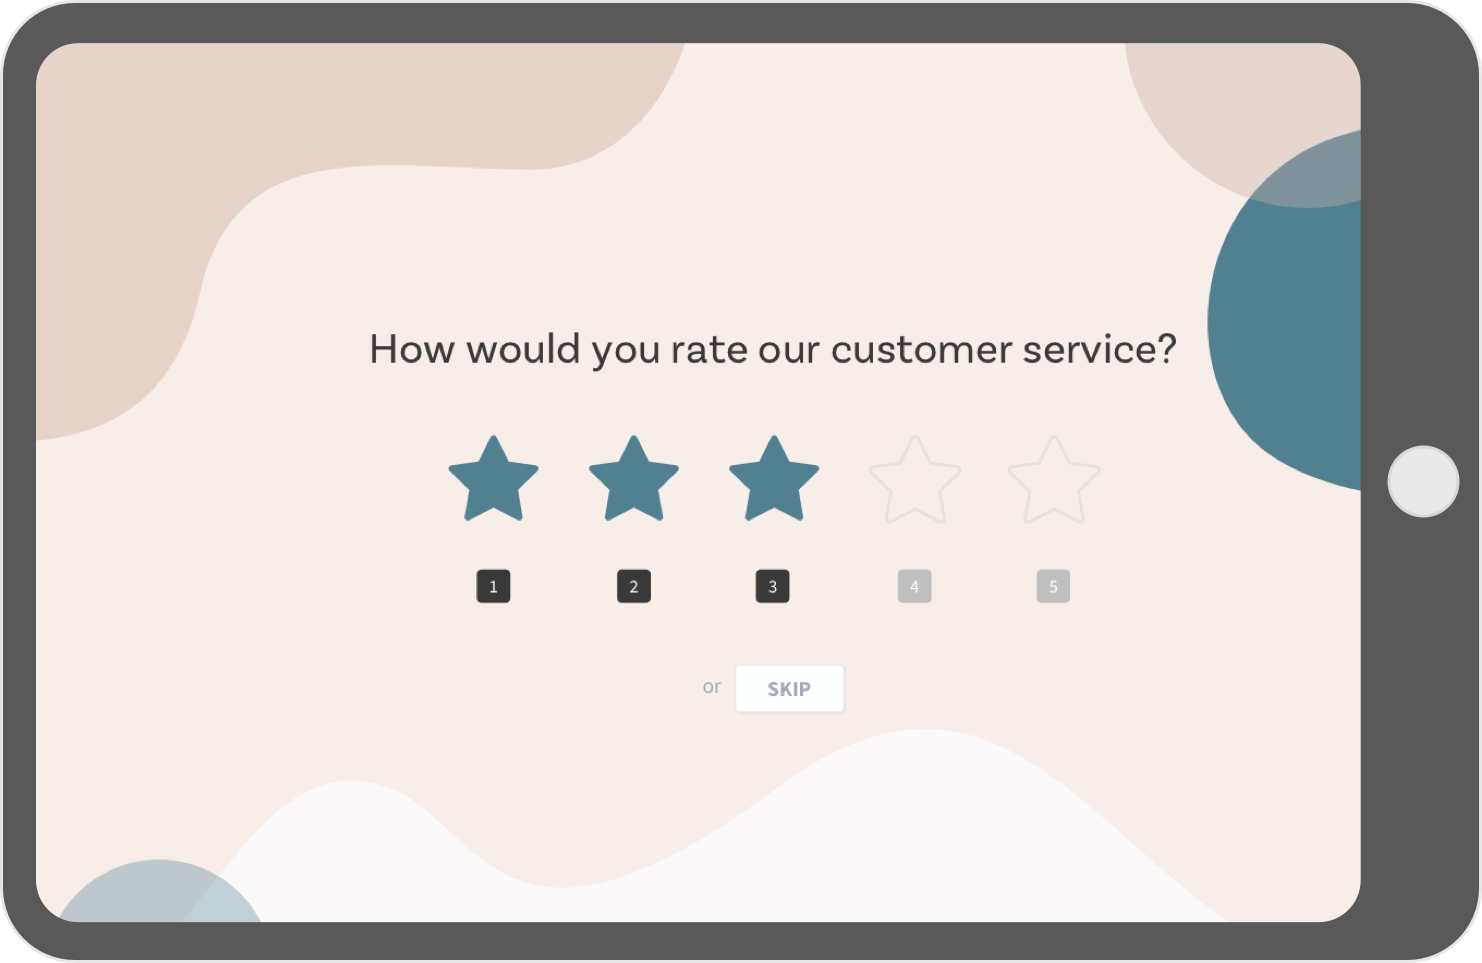 Turn on Kiosk mode in your offline survey tool and collect data.